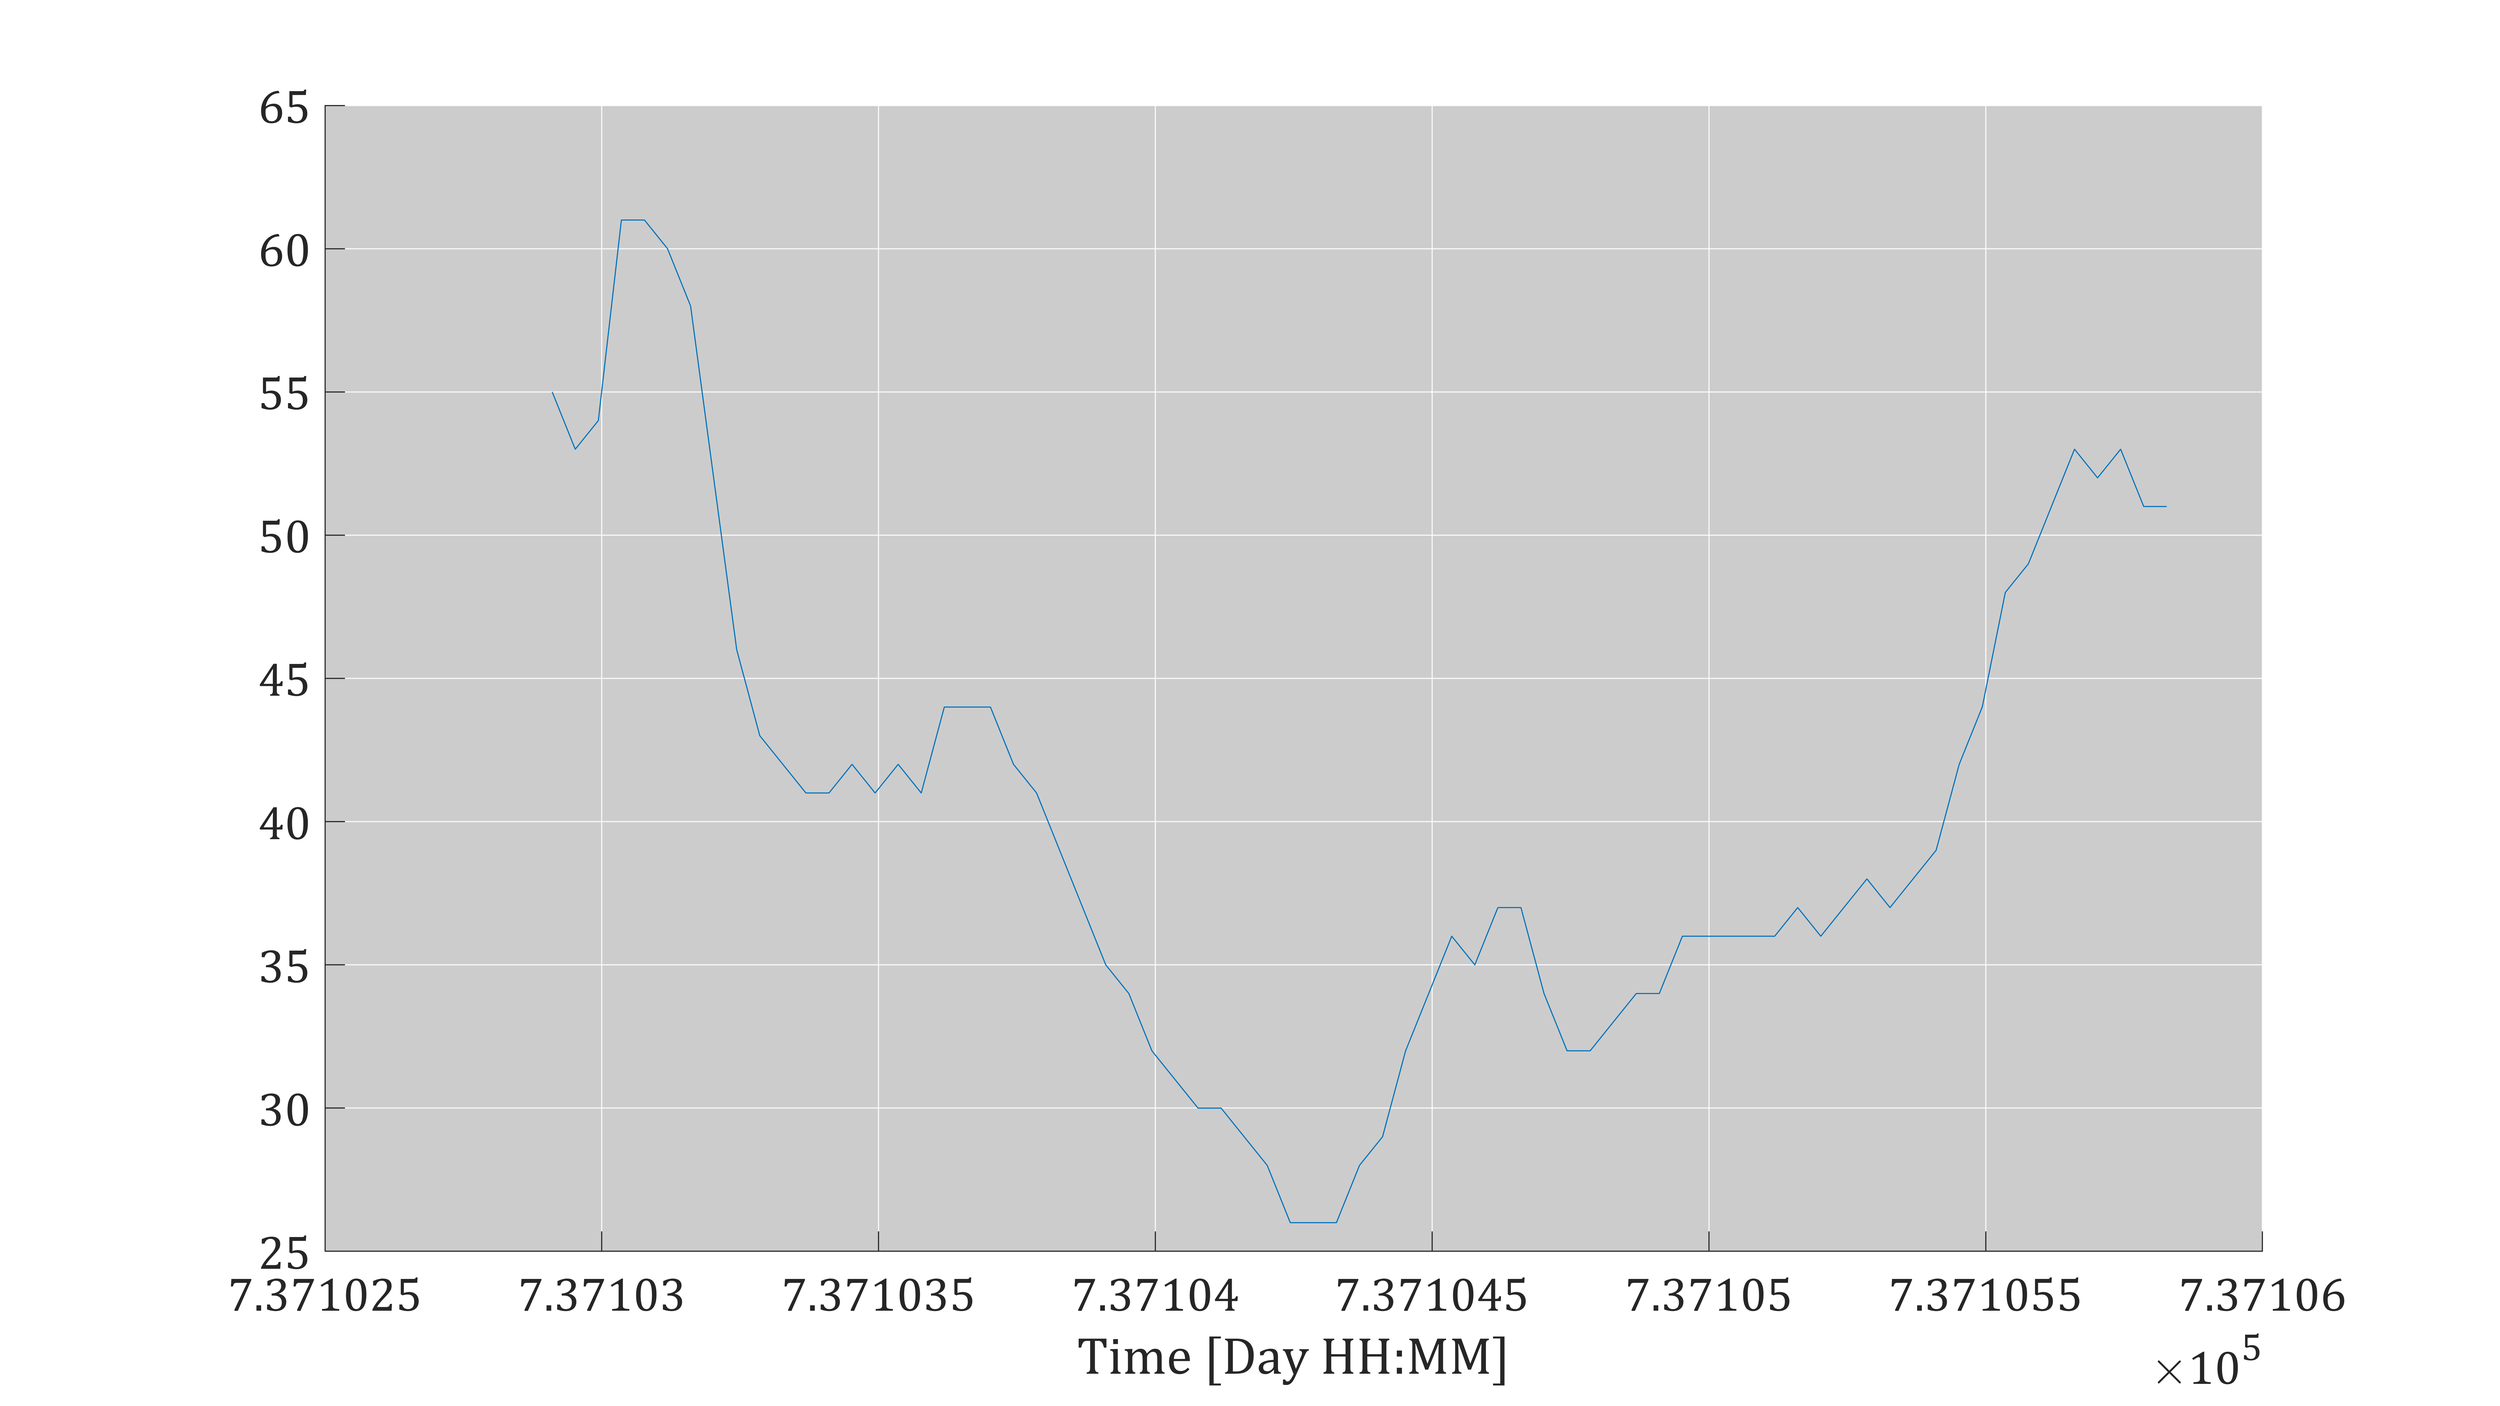 Figure 6: Raw Temperature Plot - Not publication quality yet, but we're getting there!